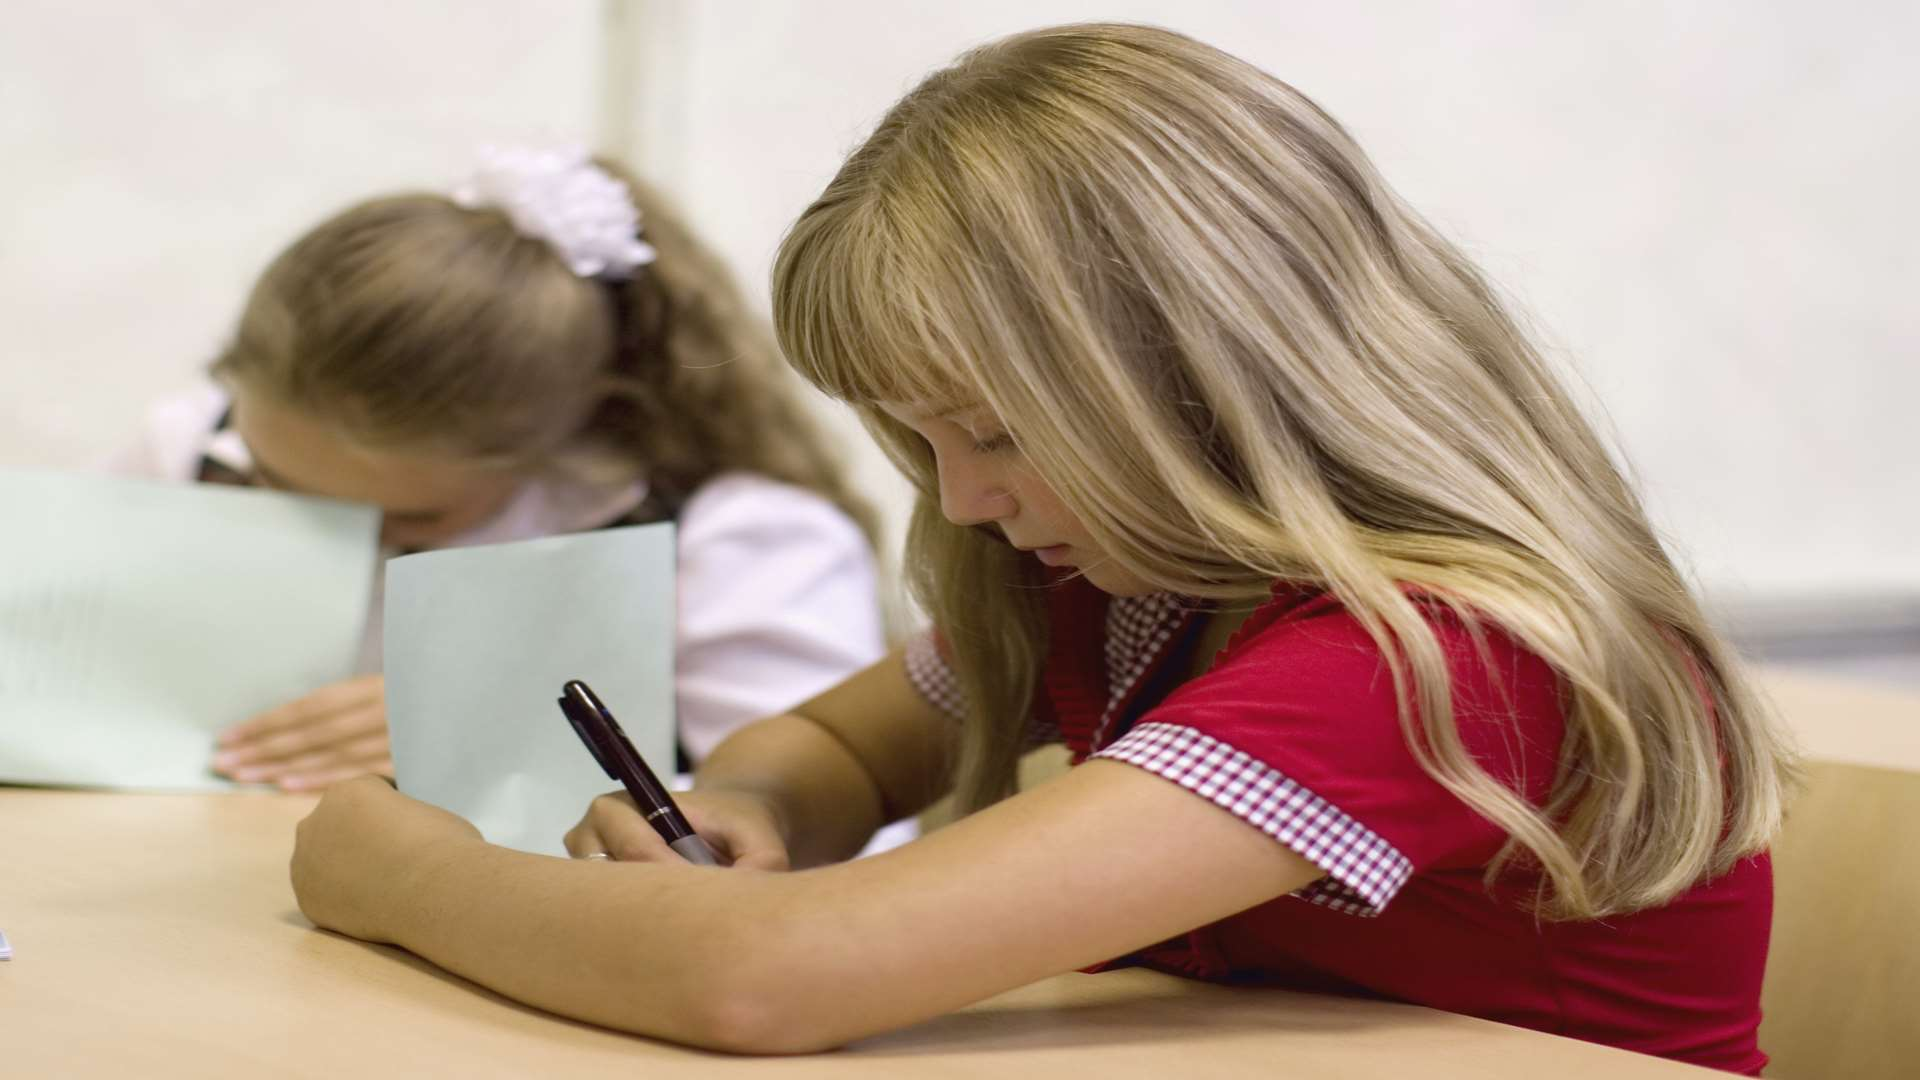 Pupils taking a test. Stock image.